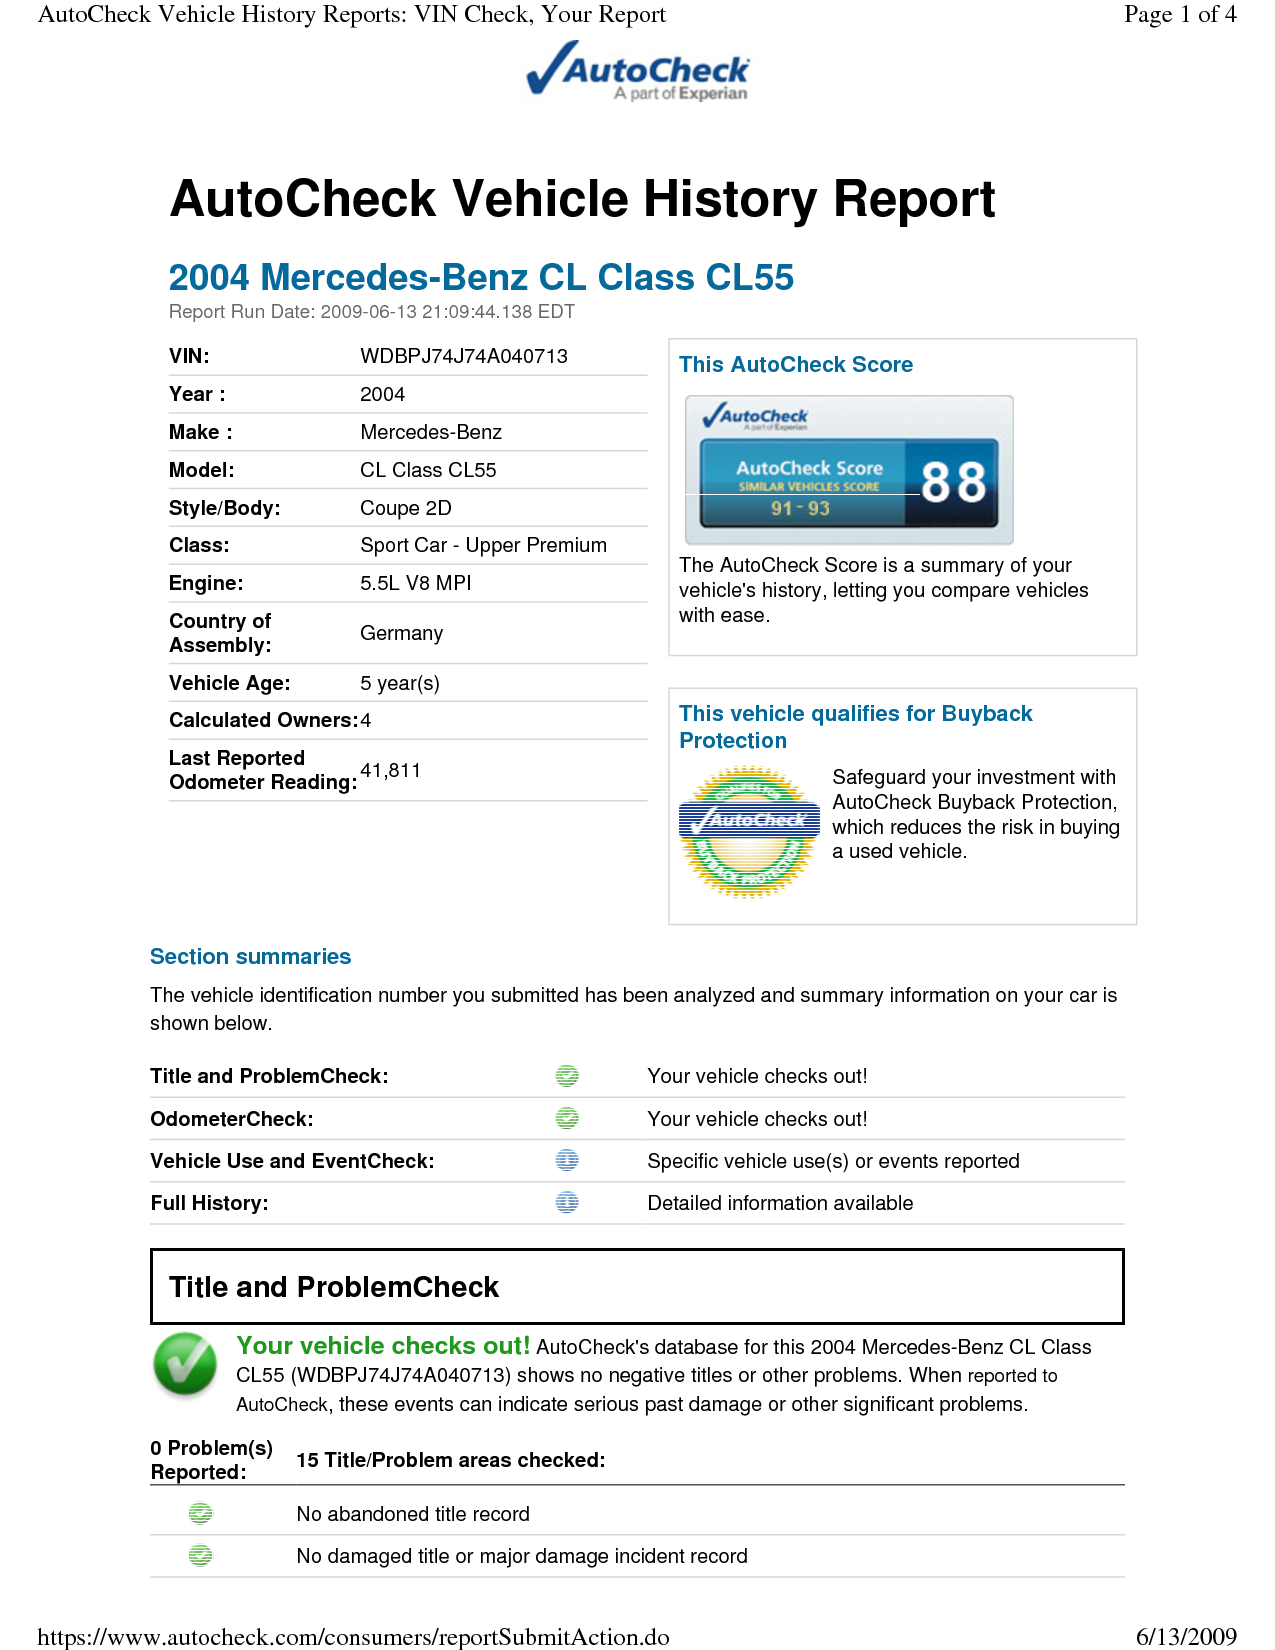 CarFax vs AutoCheck Reports - What You Don\'t Know!